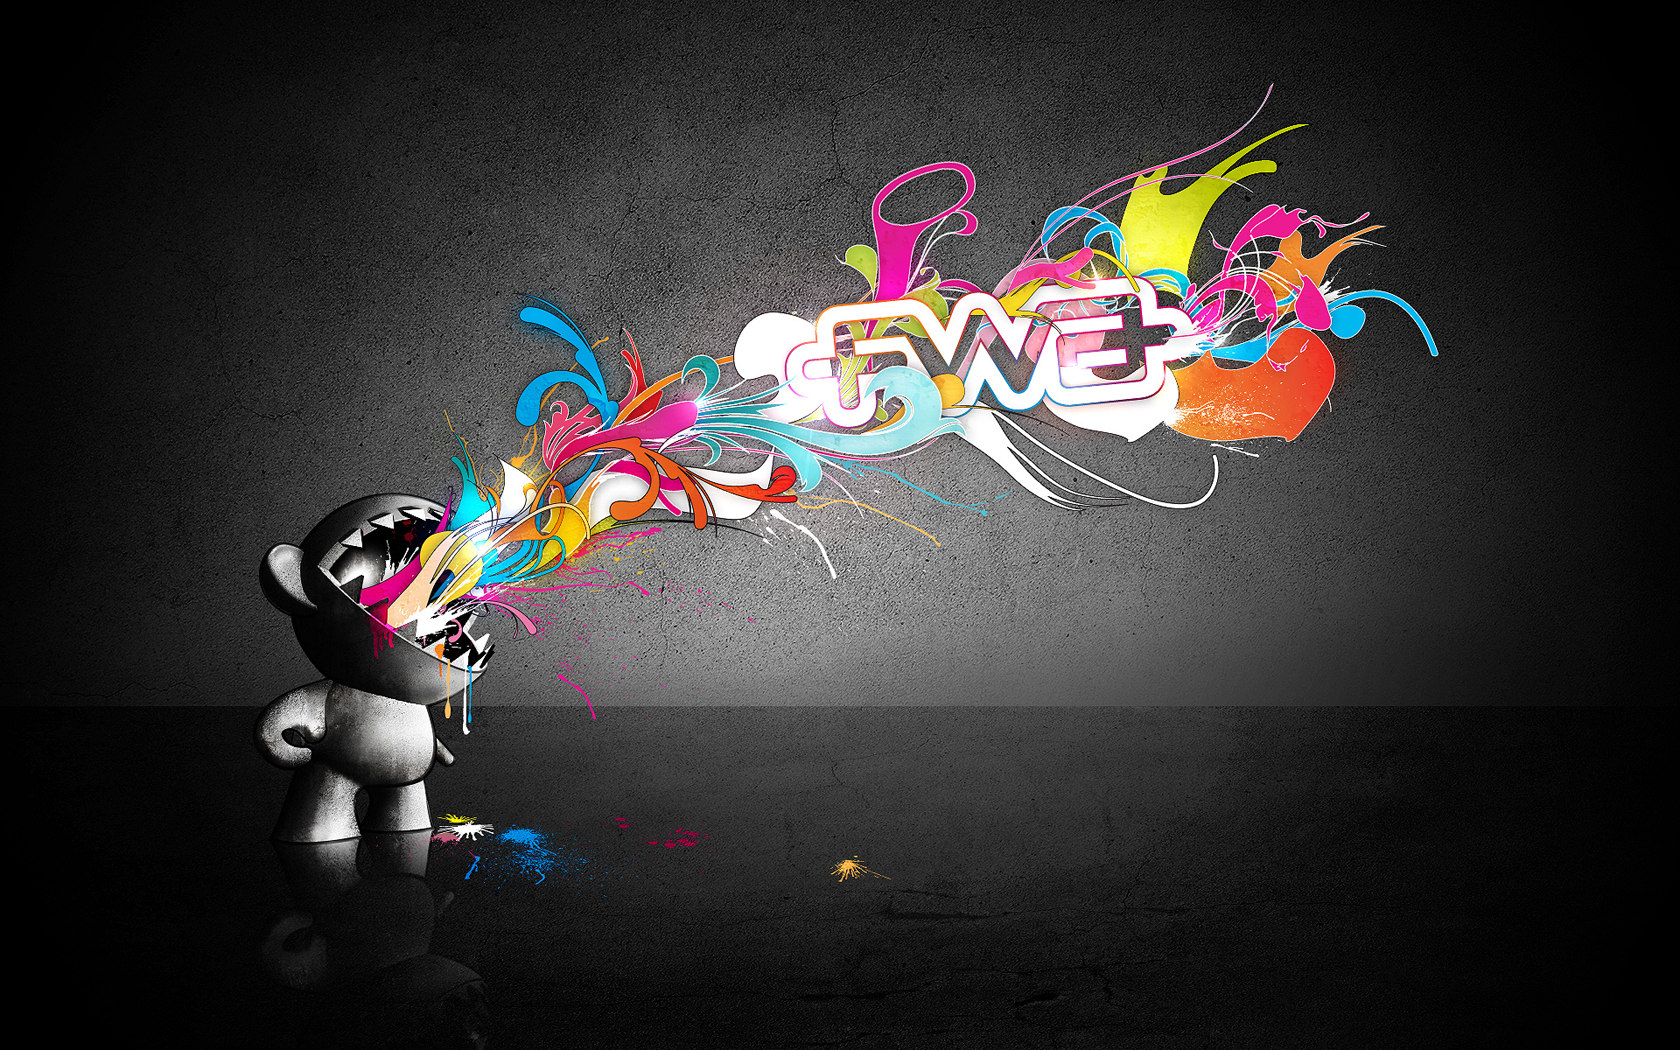 fwa theme design wallpaper 28792 - creative design - classic design